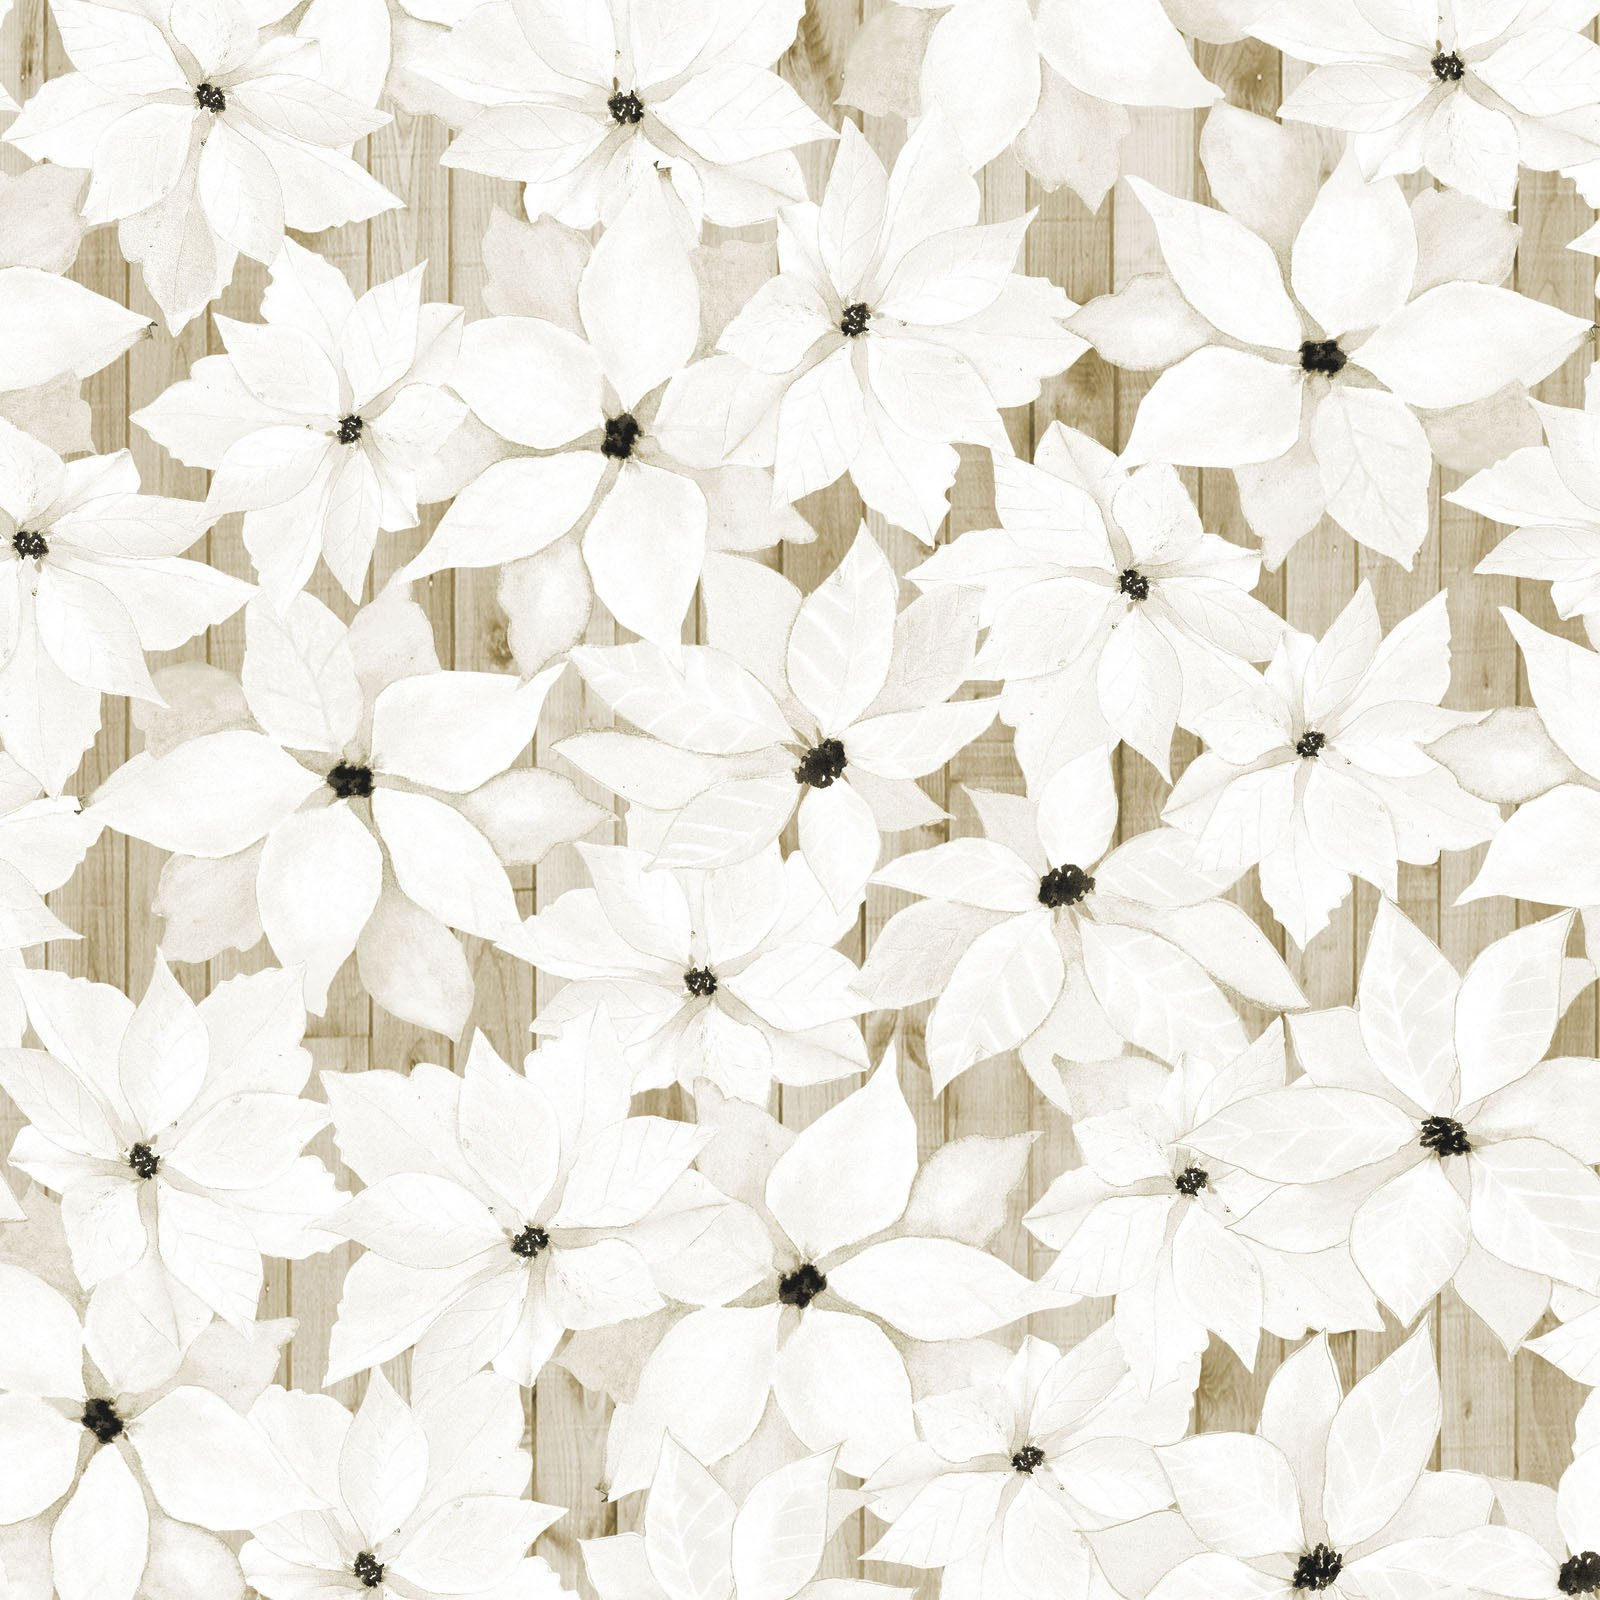 SOPC-4420 NE- SOPHISTICATED CHRISTMAS BY GRACE POPP FLOWERS NEUTRAL - ARRIVING IN MAY 2021